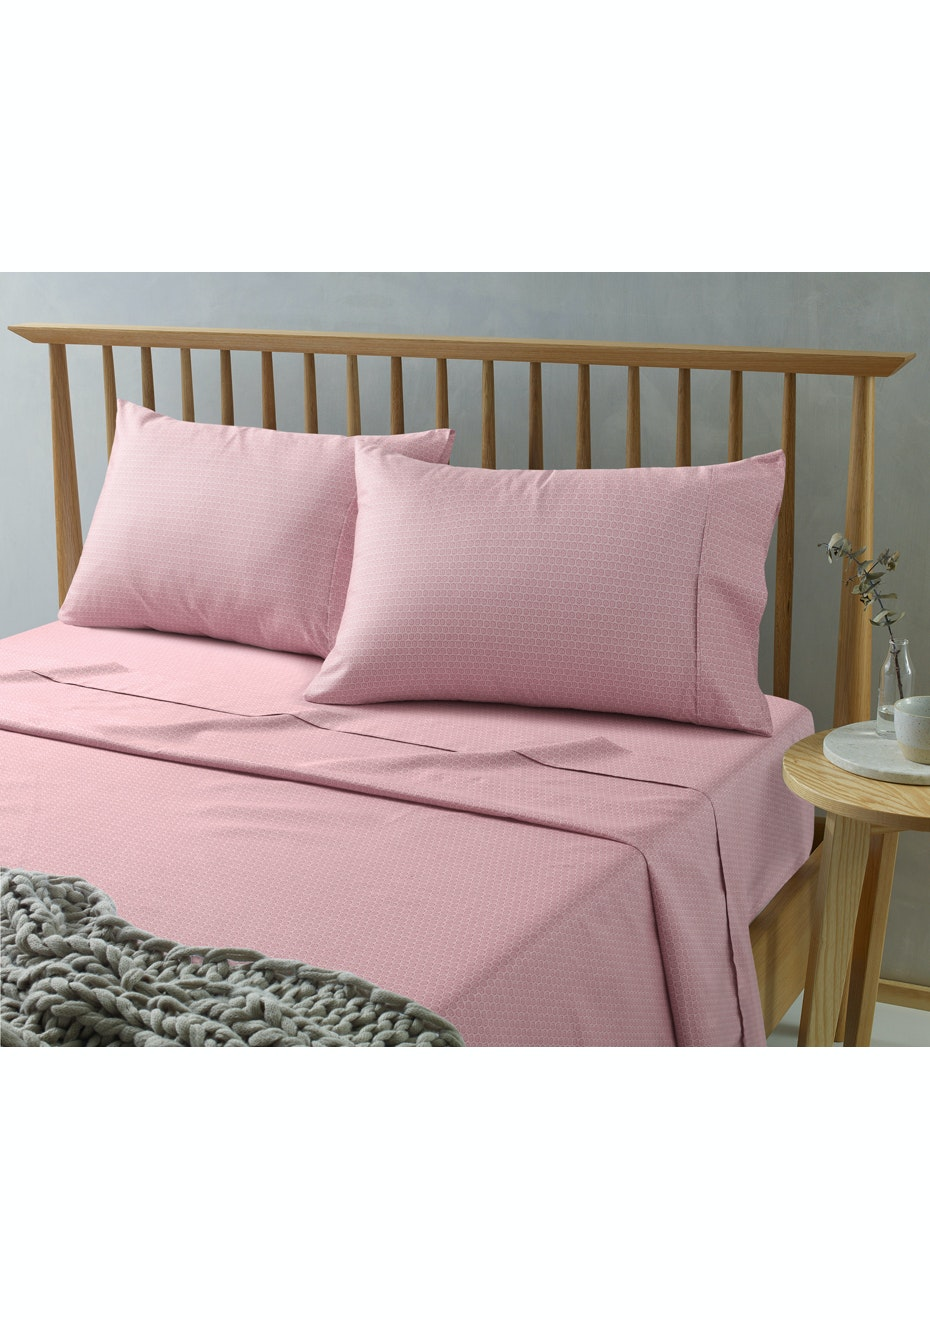 Daisy Pink Printed Microfibre Sheet Set King Bed Free Shipping Sheet Sets New Styles Onceit